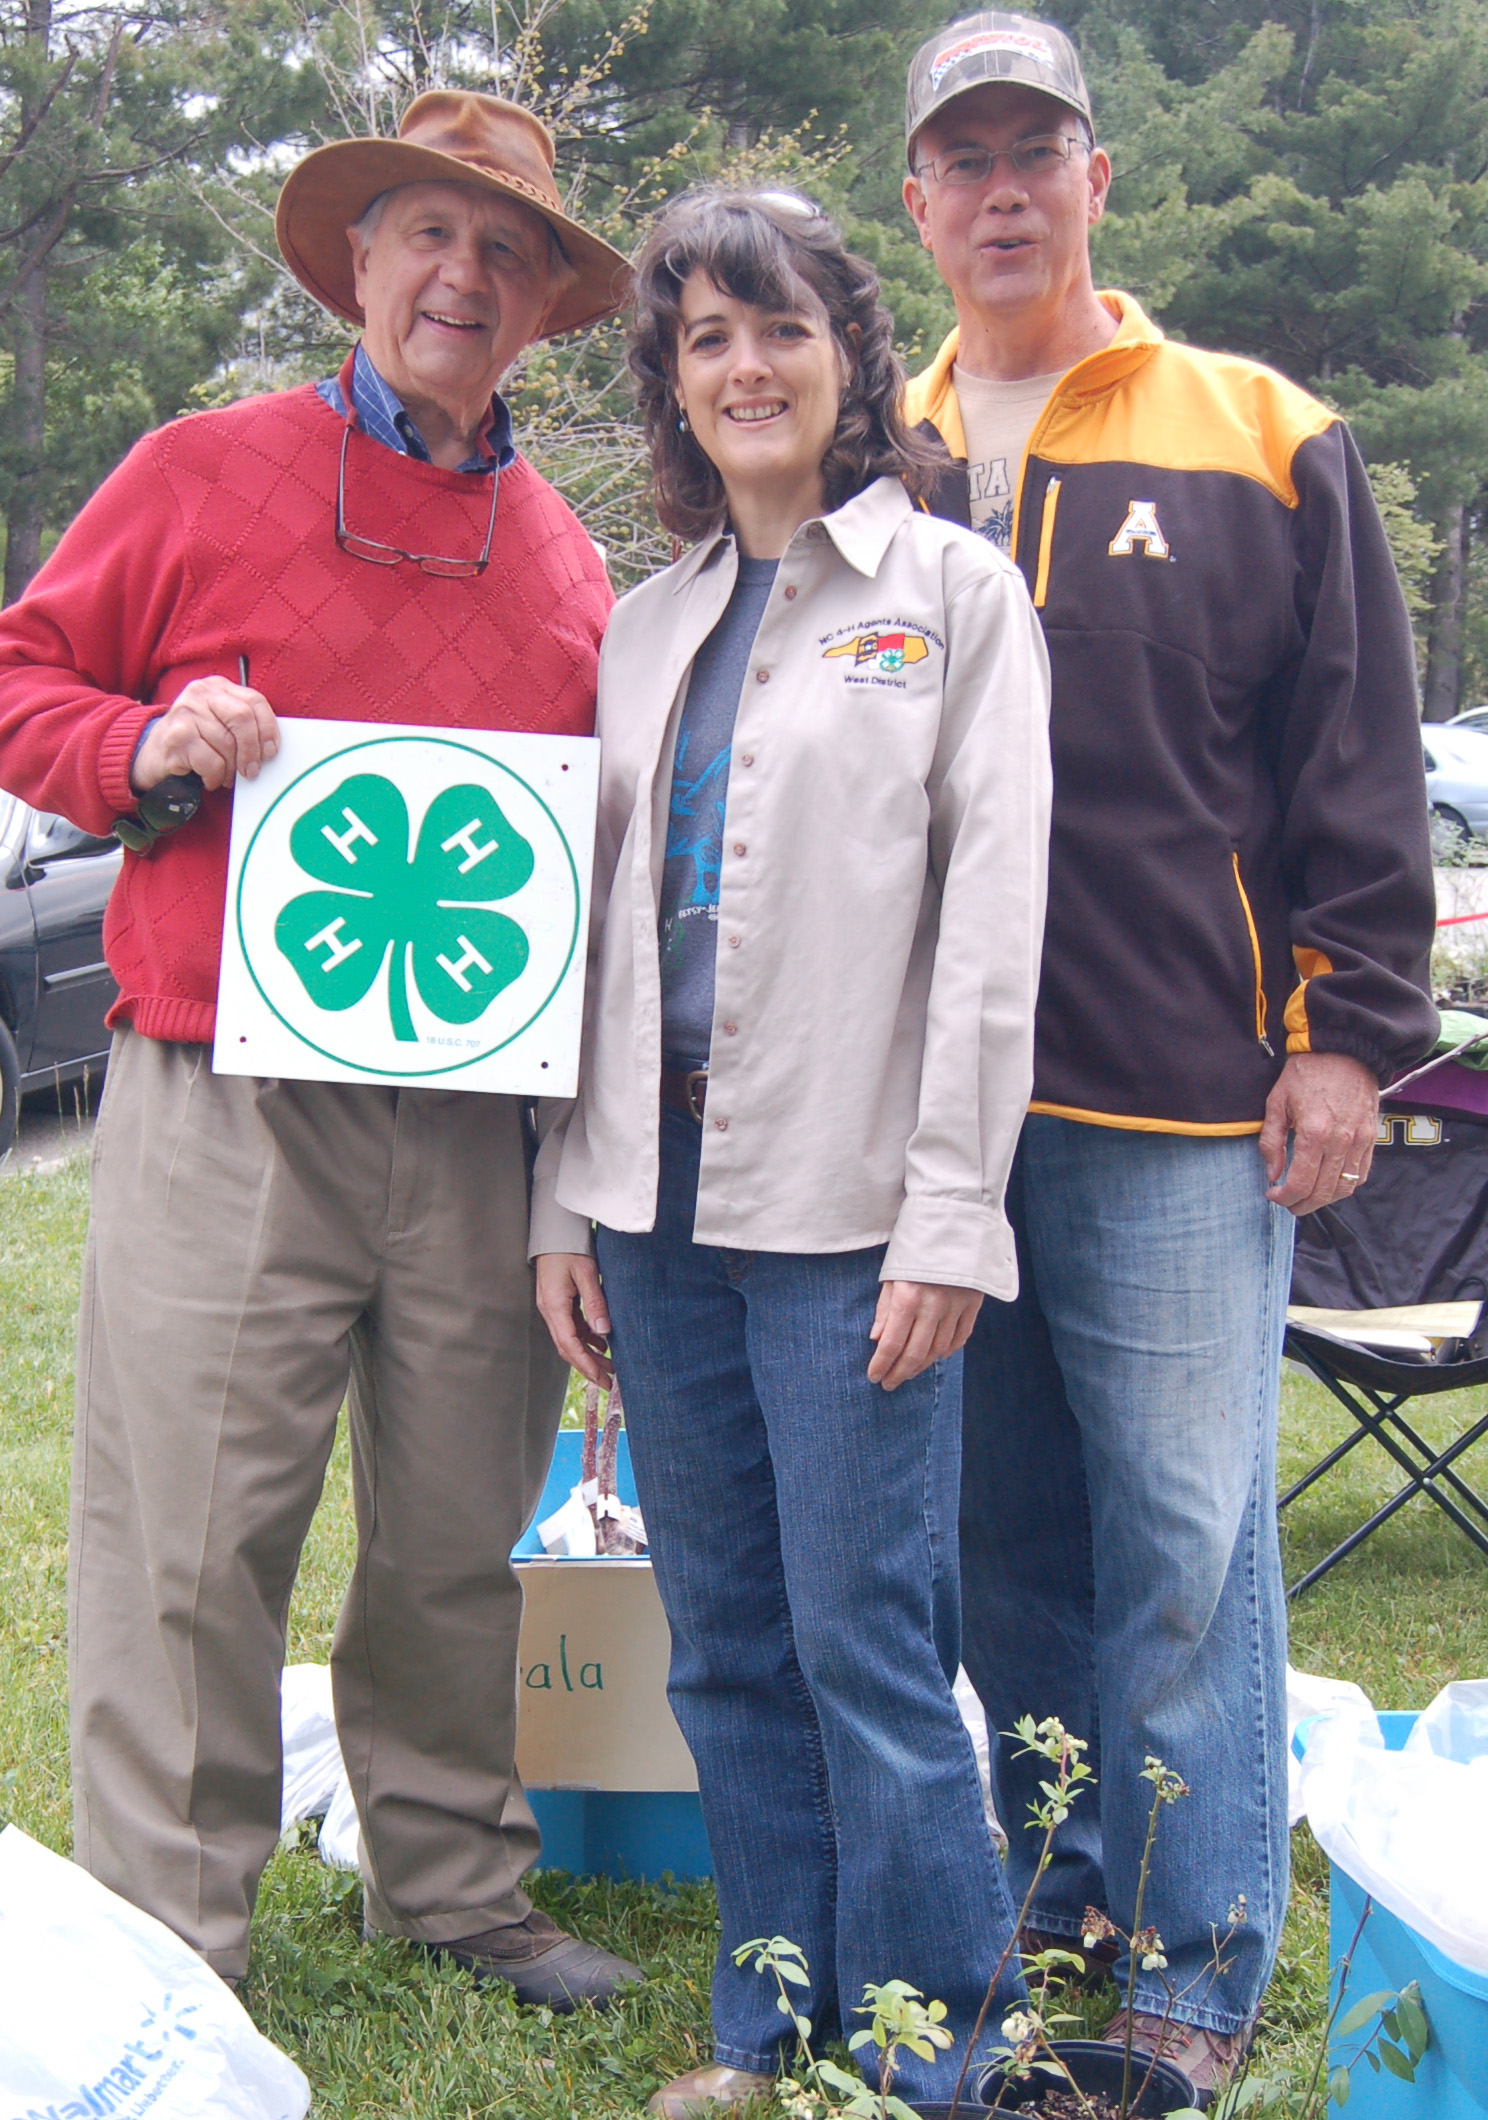 Dr. Dave Kline & 4-H supporters